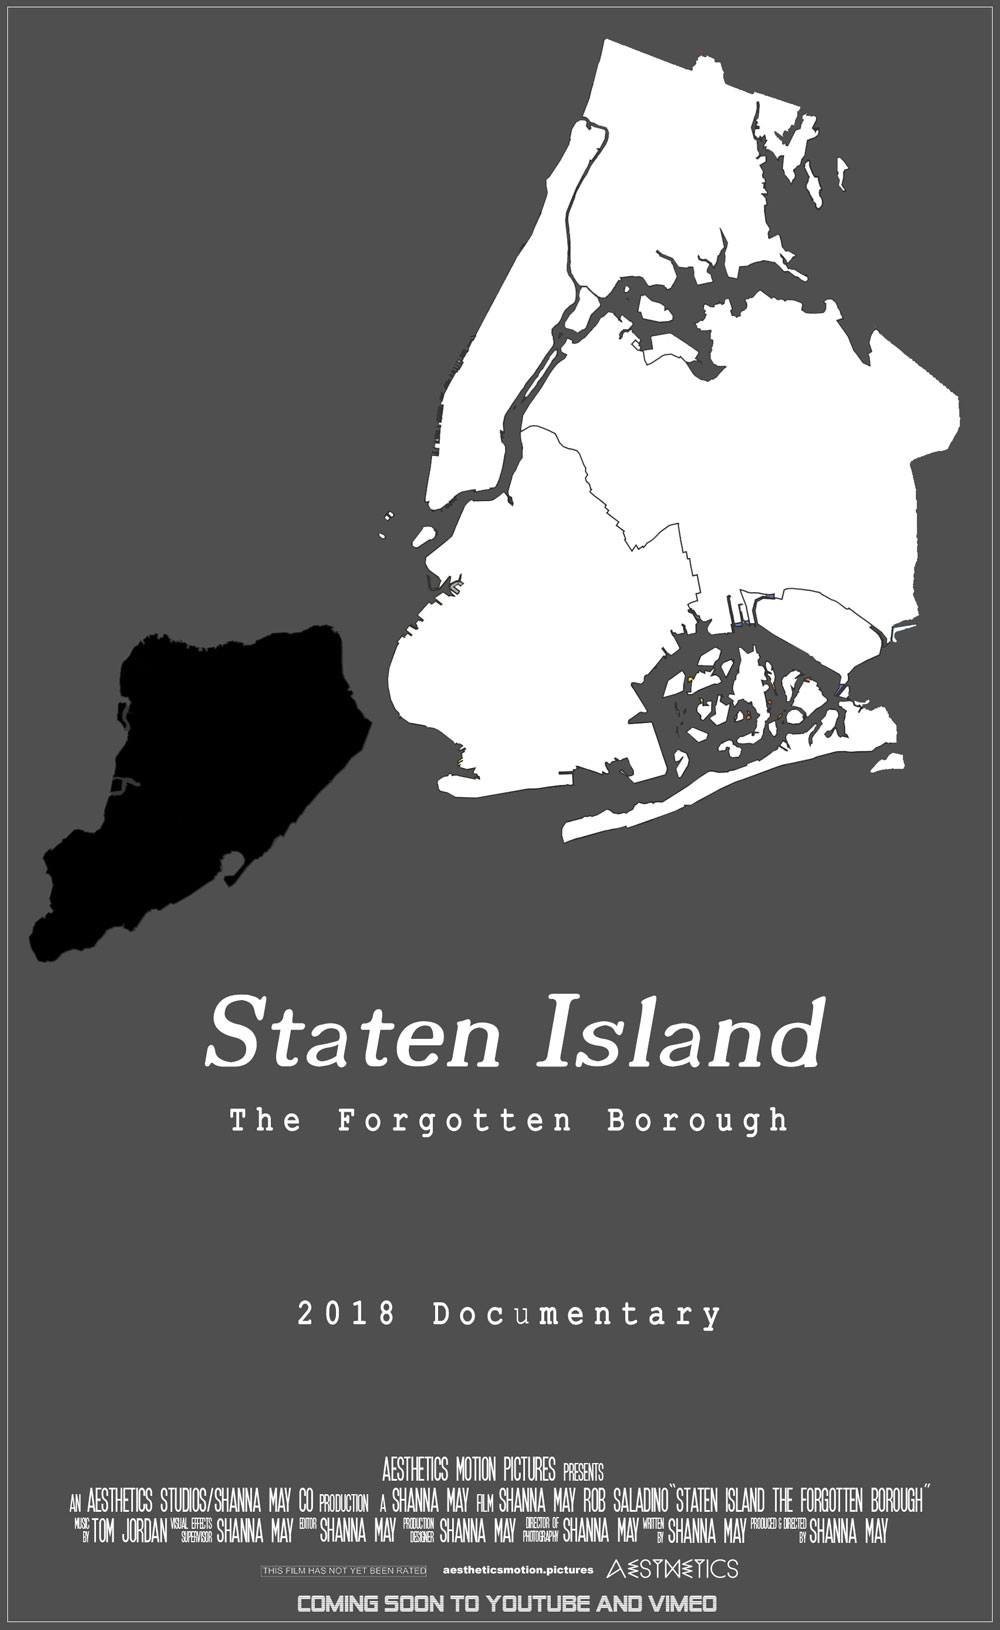 aesthetics motion pictures shanna may director staten island the forgotten borough documentary